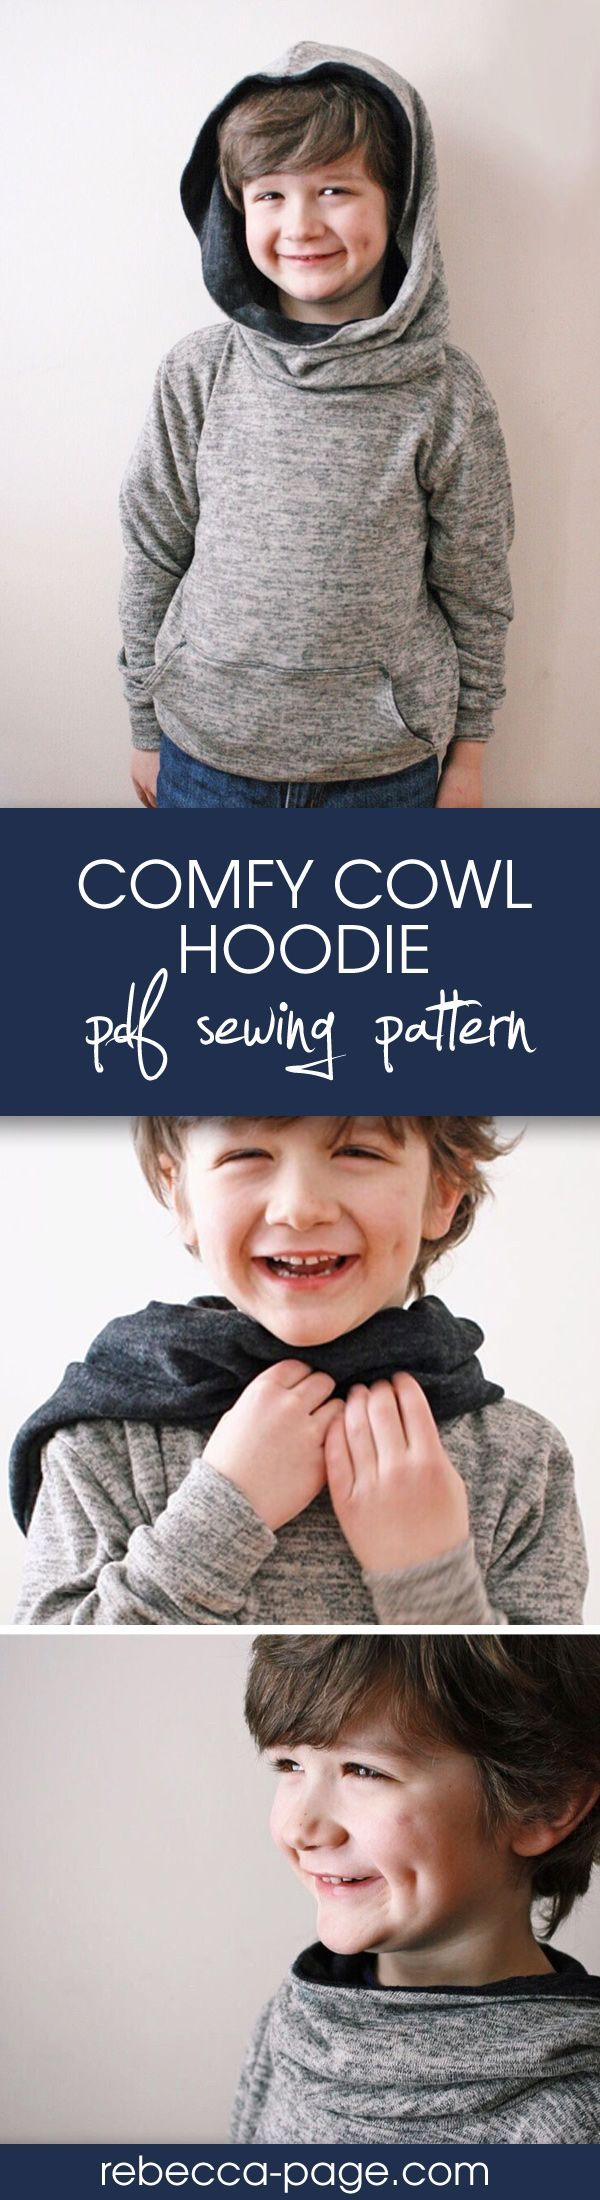 Super comfy and oh so cosy, the Comfy Cowl Hoodie PDF Sewing Pattern has an optional front pocket and is perfect for both boys and girls. Includes sizes newborn to 12 years. Hoodie sewing pattern also available in ladies XXS to 5XL.